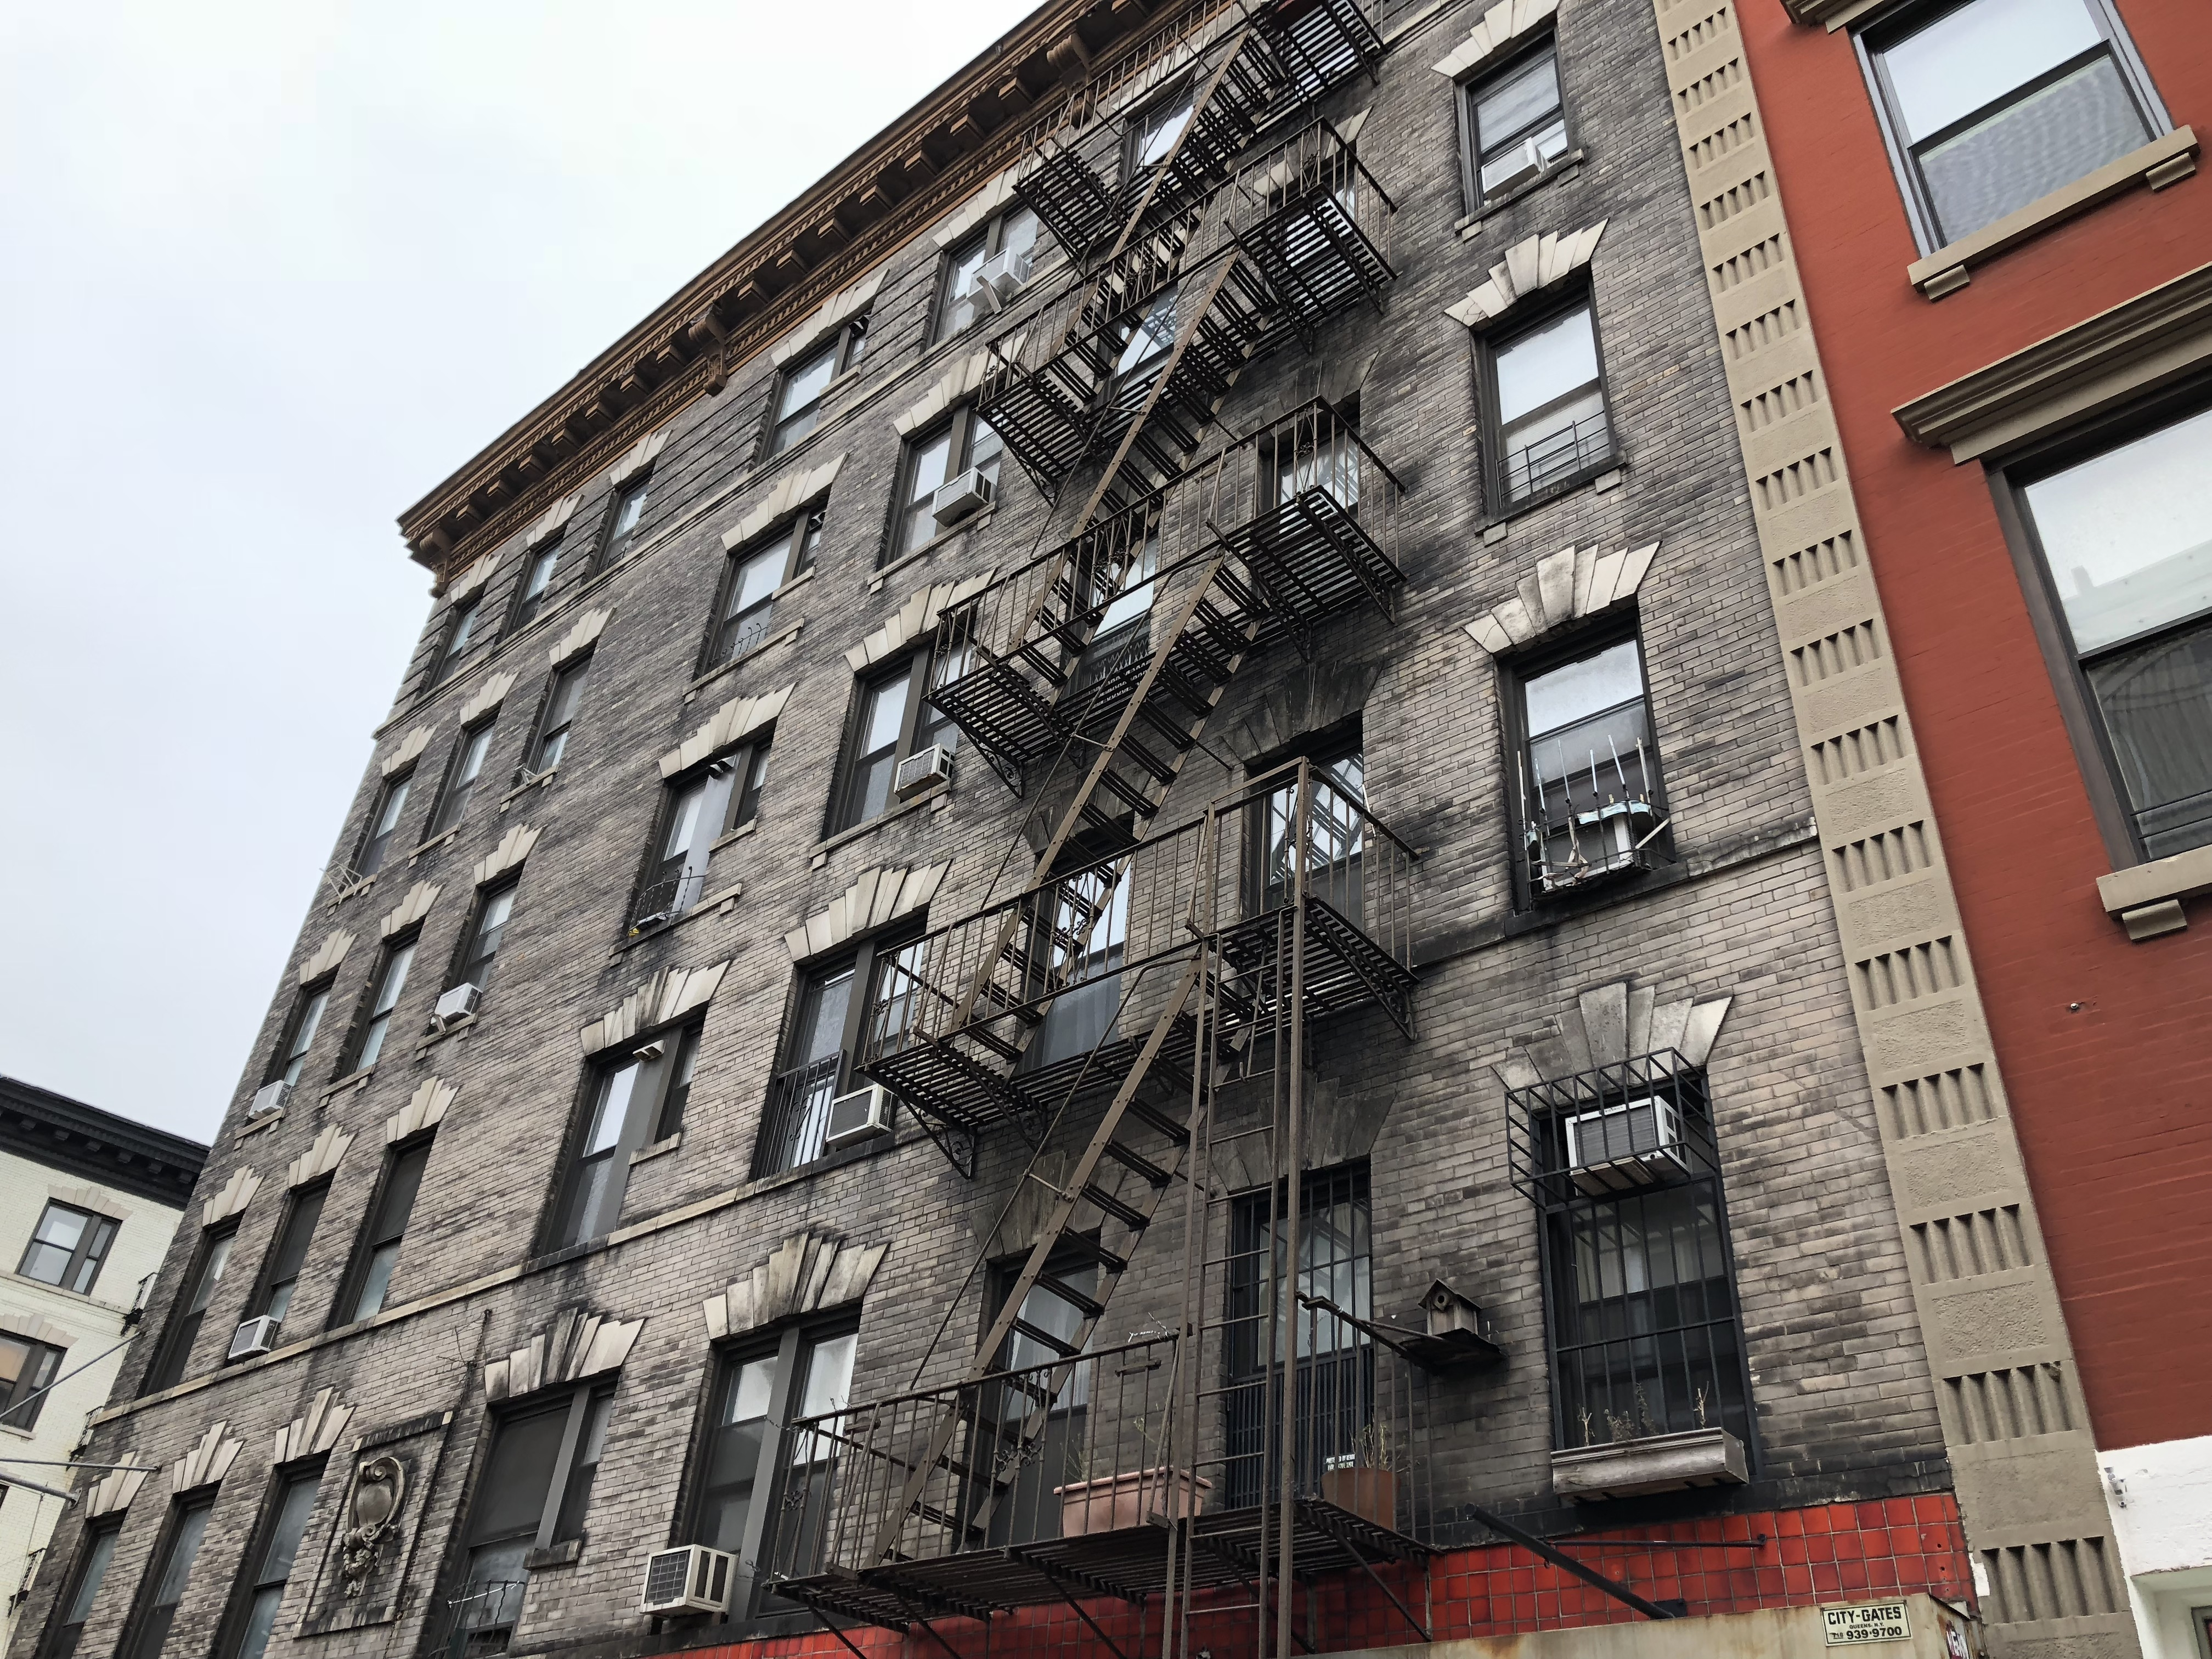 Nyc Fire Escapes Sullivan Engineering Llc | External Metal Fire Escape Stairs | Metal Railings | Stock Photo | Stair Railing | External Spiral Staircase | Fire Safety